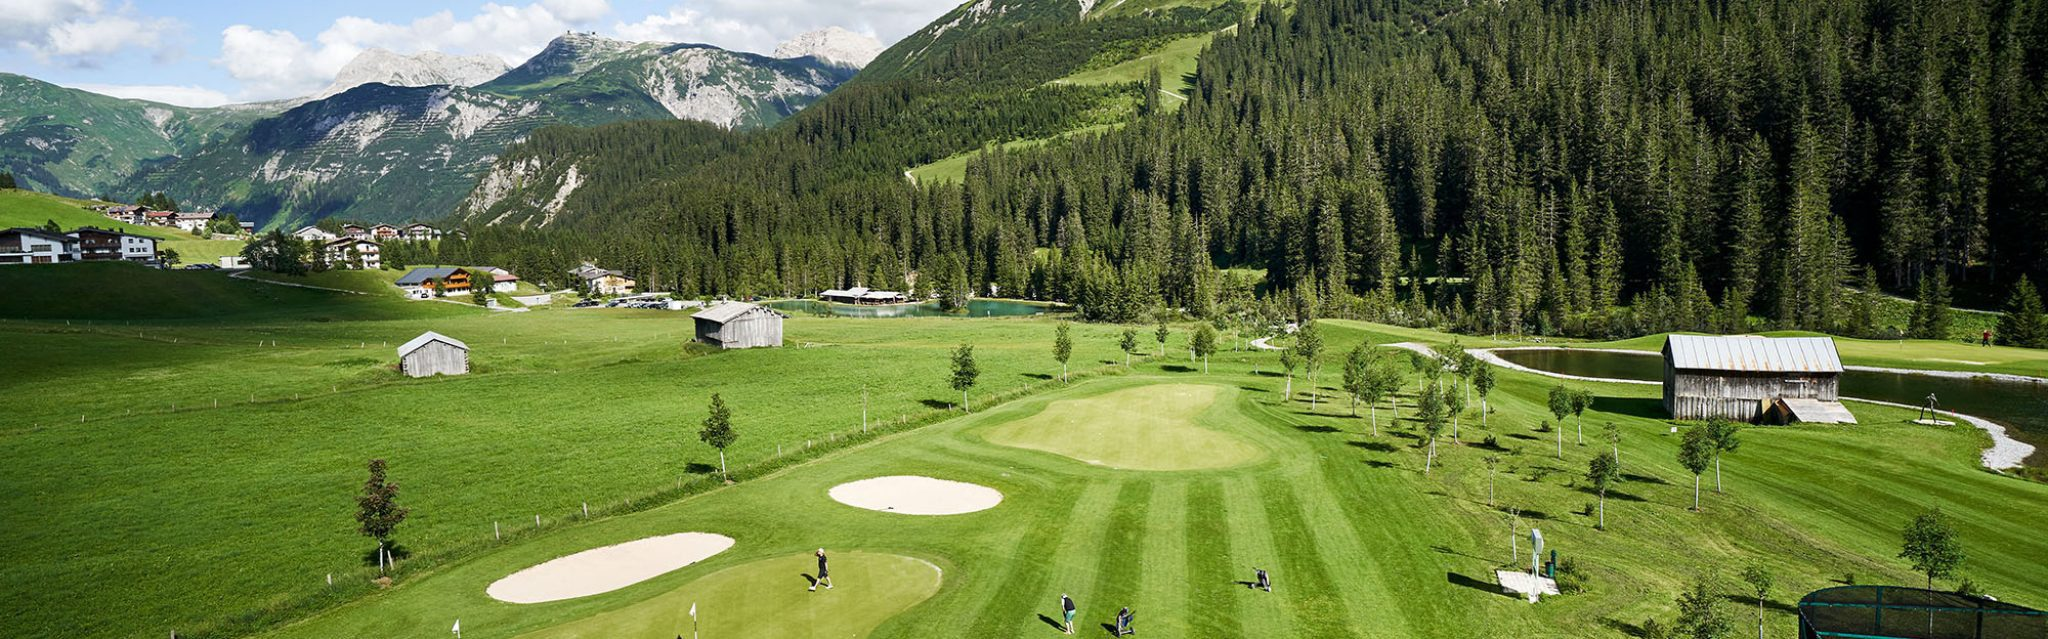 Golf in Lech; Hotel Gasthof Post, Lech, Vorarlberg